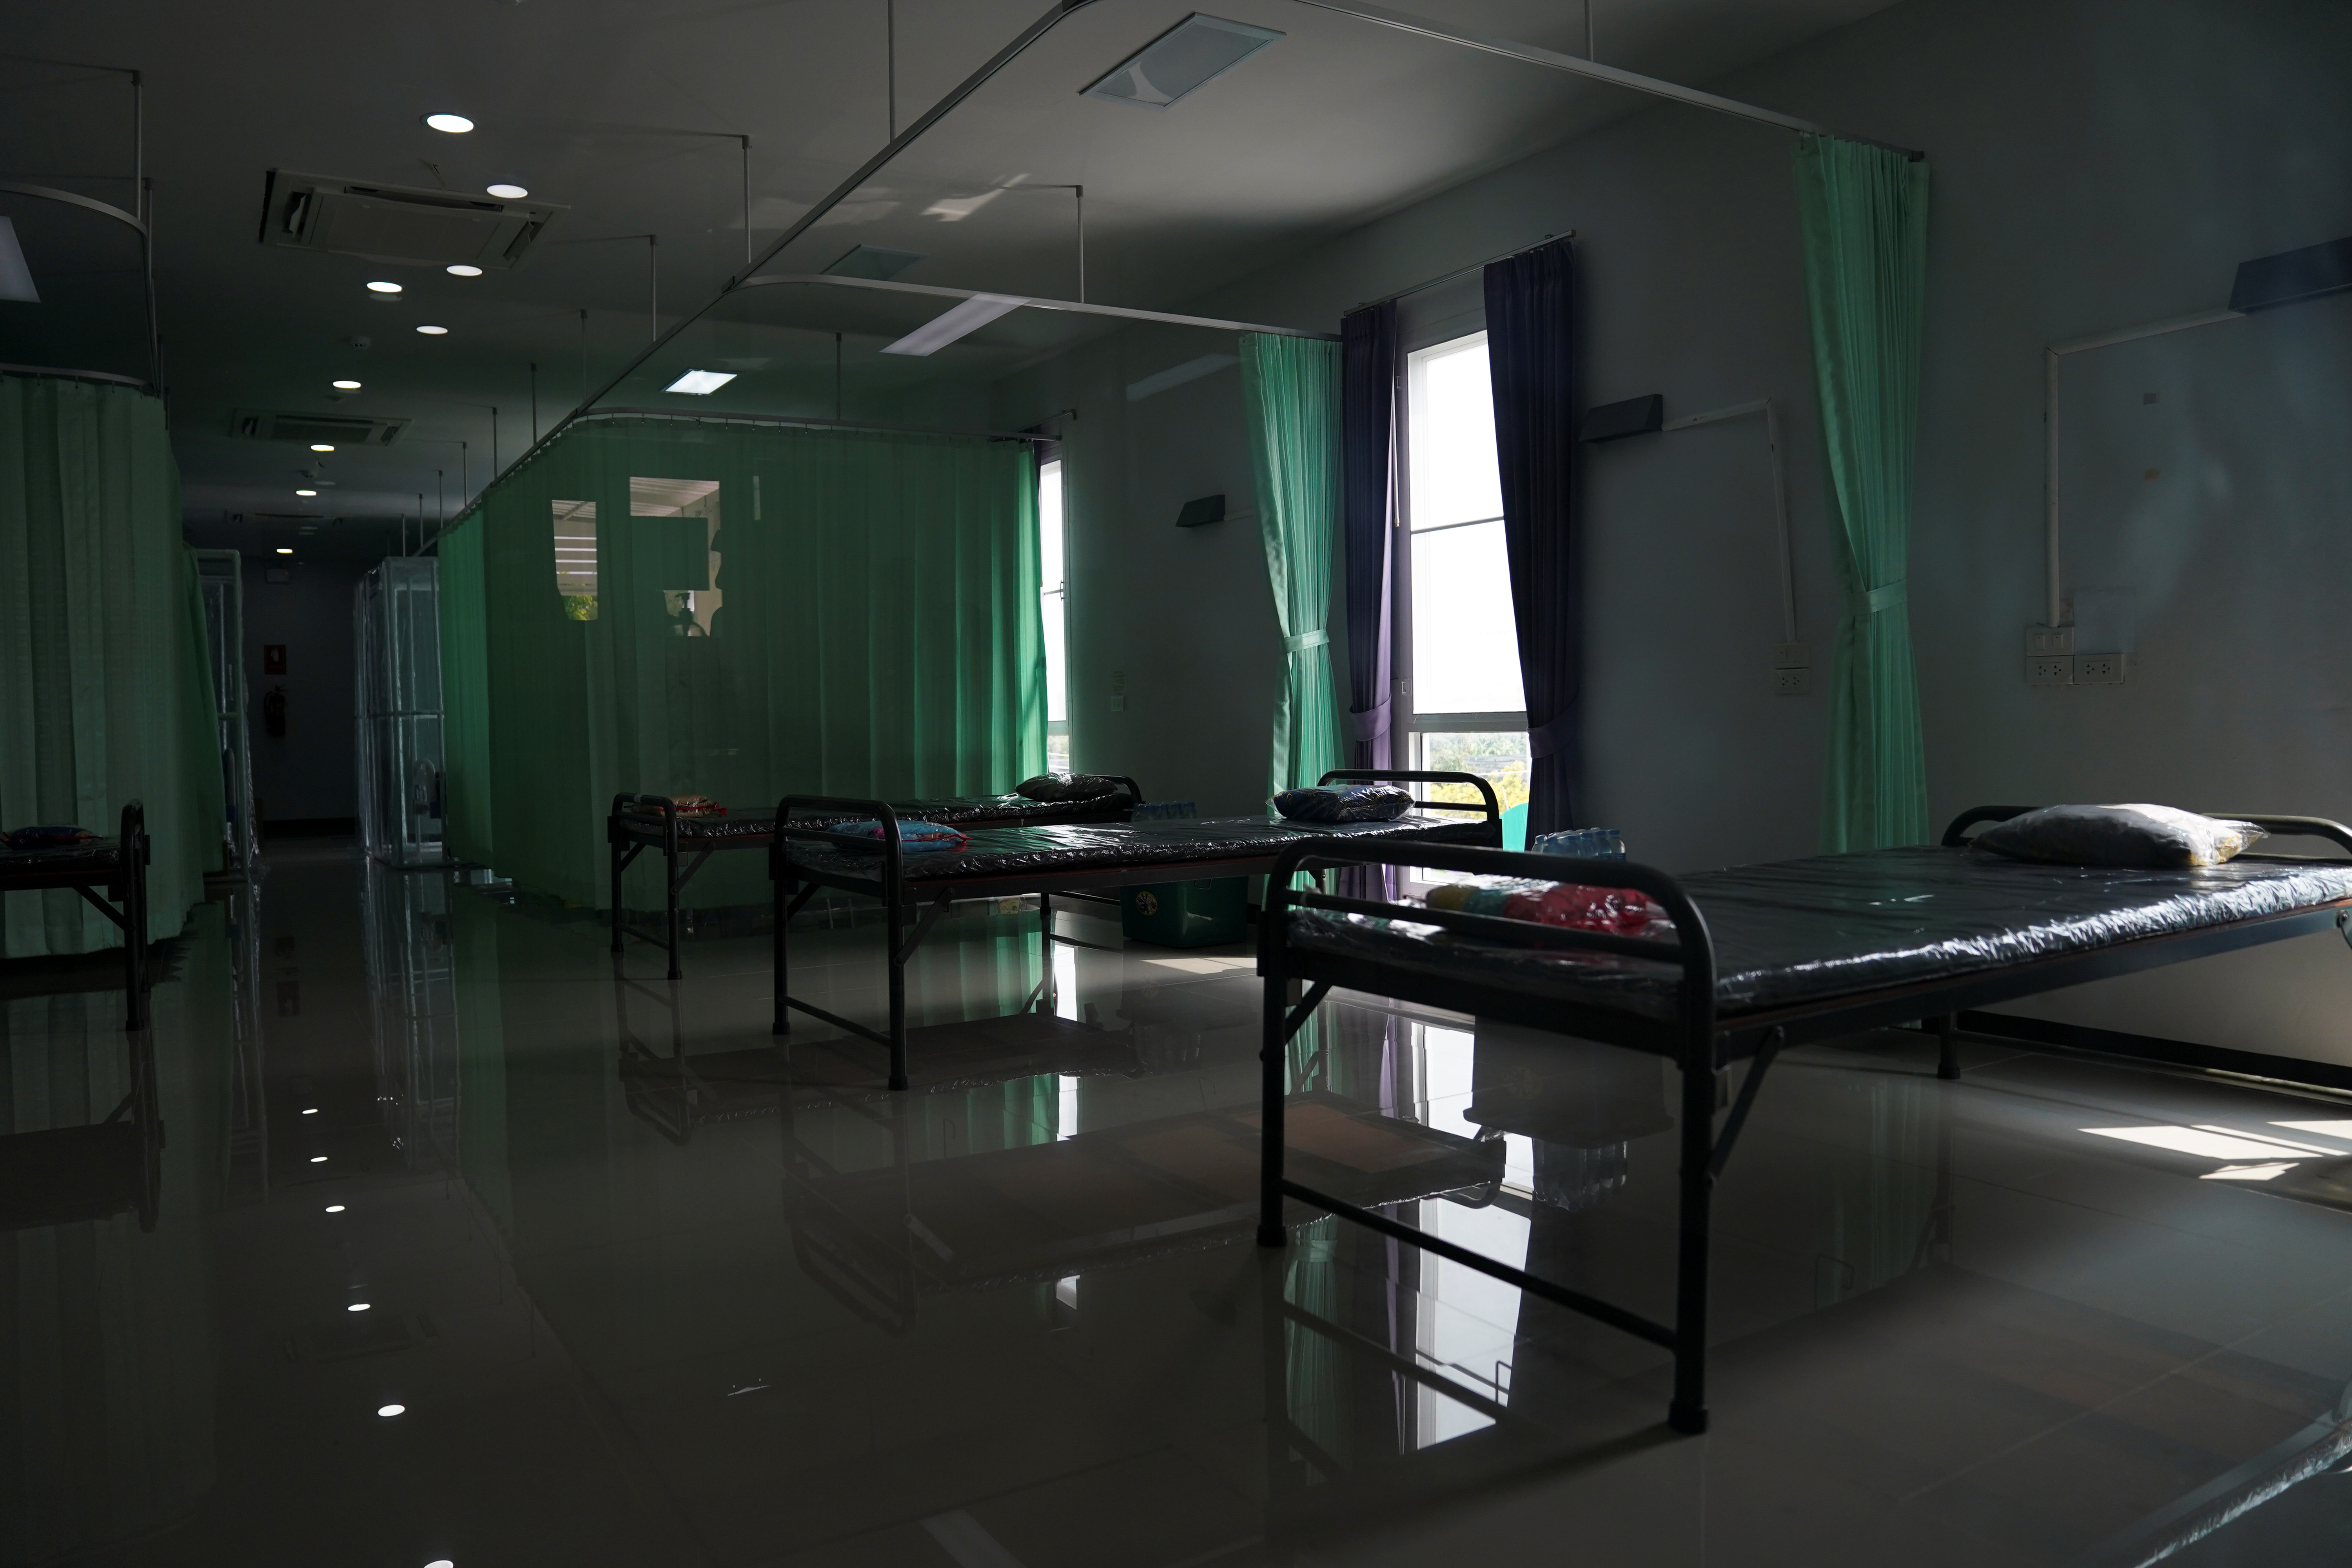 Empty beds are seen inside a field hospital recently set up to fight the spread of the coronavirus disease (COVID-19) as the country deals with a fresh wave of infections after tackling earlier outbreaks, in Bangkok, Thailand, April 10, 2021. REUTERS/Athit Perawongmetha